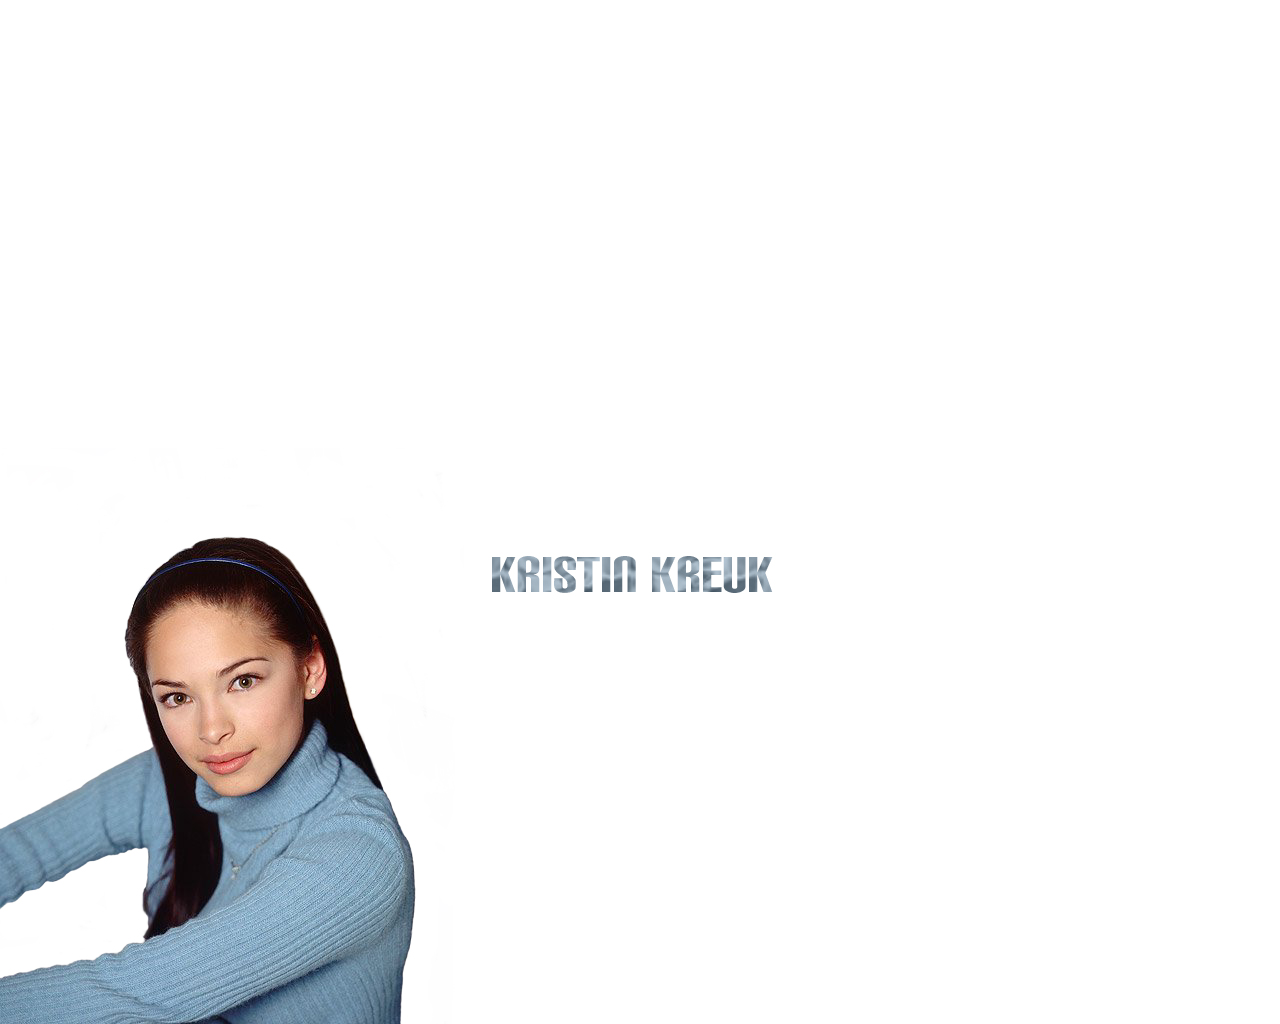 Wallpaper Kristin Kreuk Lana Blue Sweater